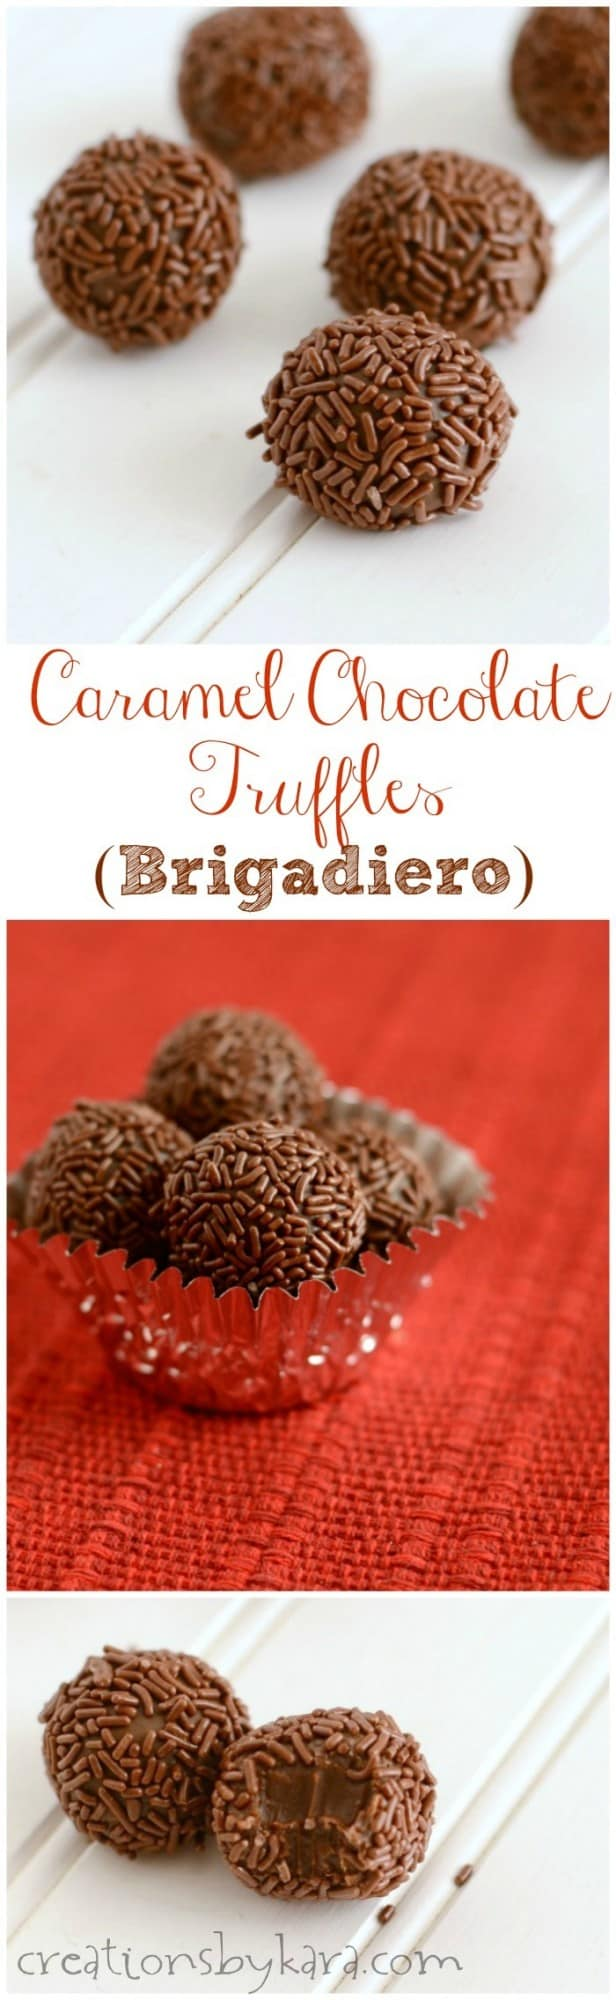 Recipe for Brazilian Brigadeiro- chocolate caramel truffles